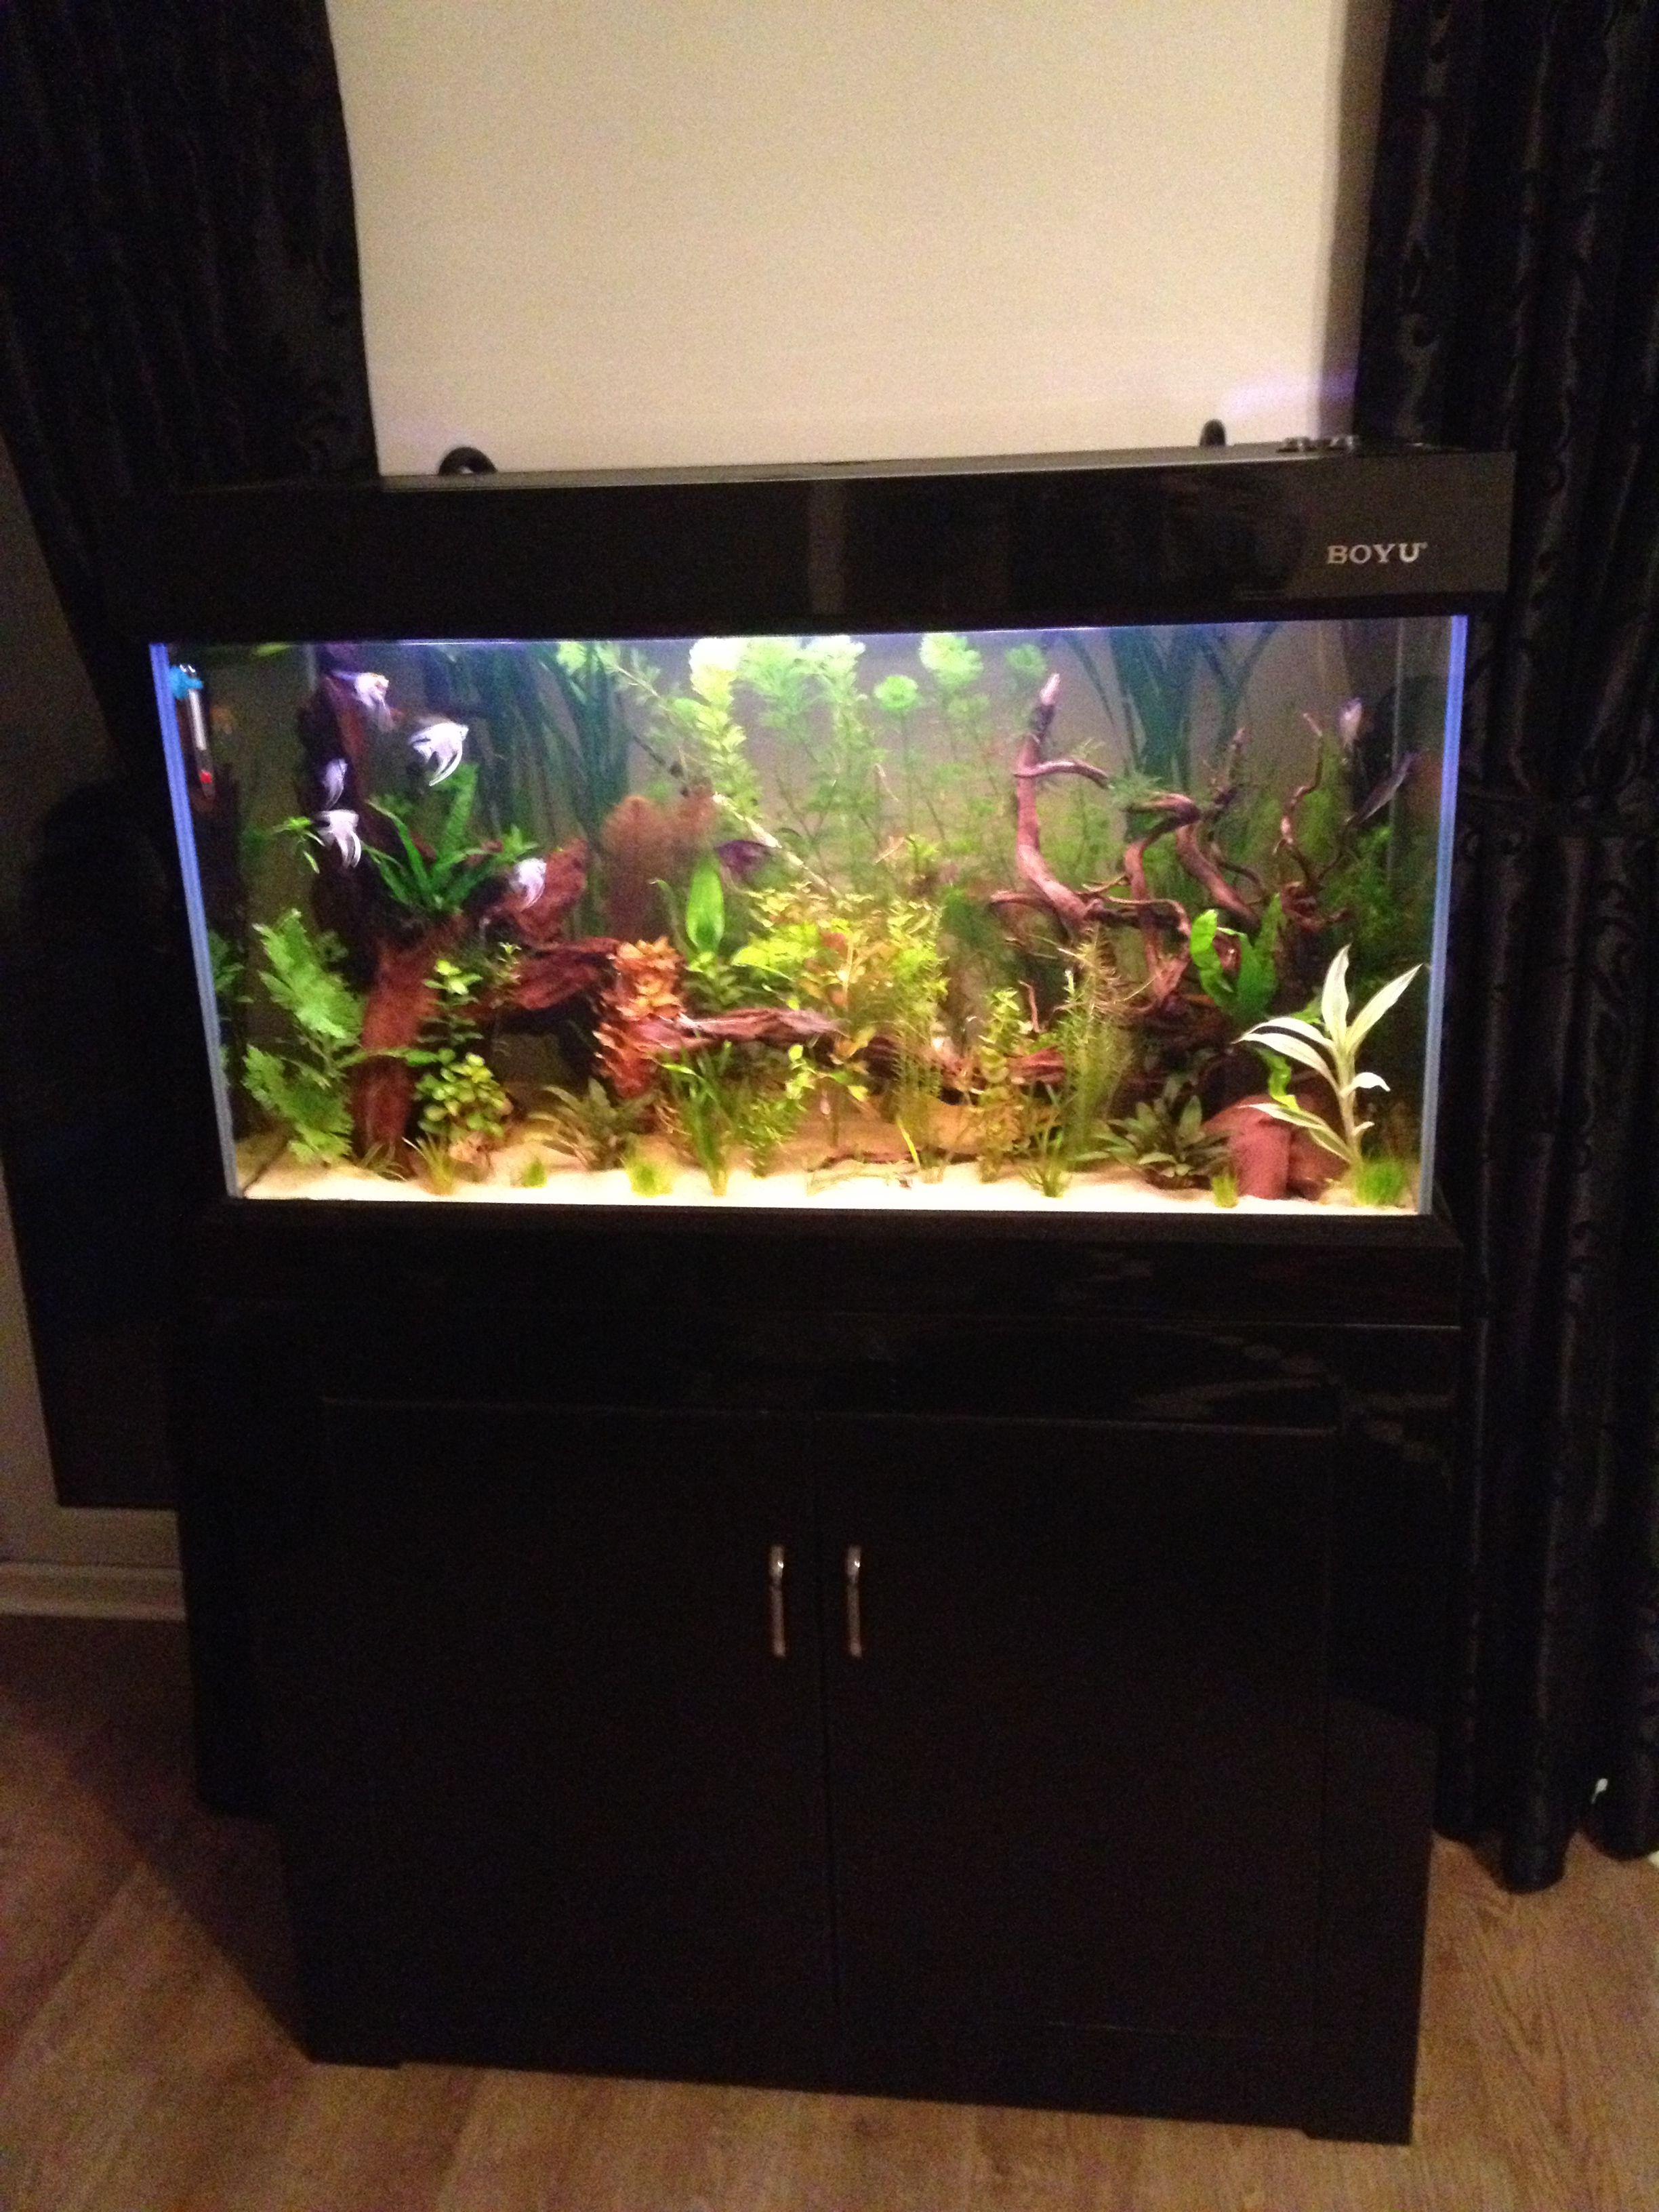 Aquarium fish tank price - Our Customer S Beautiful Boyu Fish Tank Http Www Allpondsolutions Co Fish Tank Pricefish Tanksaquarium